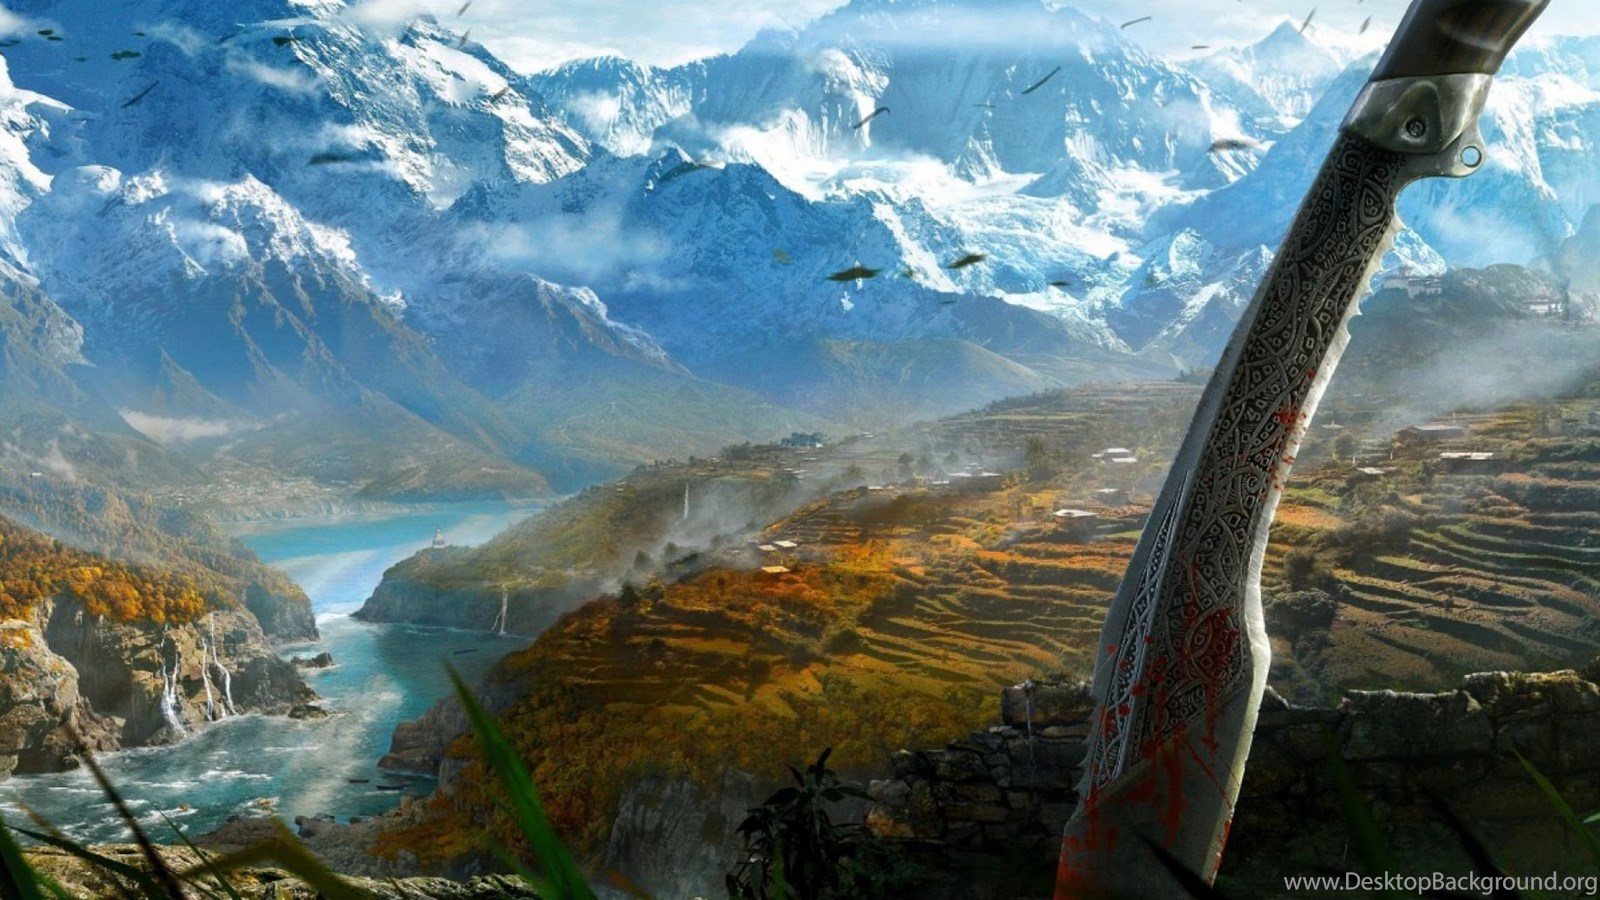 Far Cry 4 Wallpapers Hd Desktop And Mobile Backgrounds: Dual Monitor Resolution Far Cry 4 Wallpapers HD, Desktop